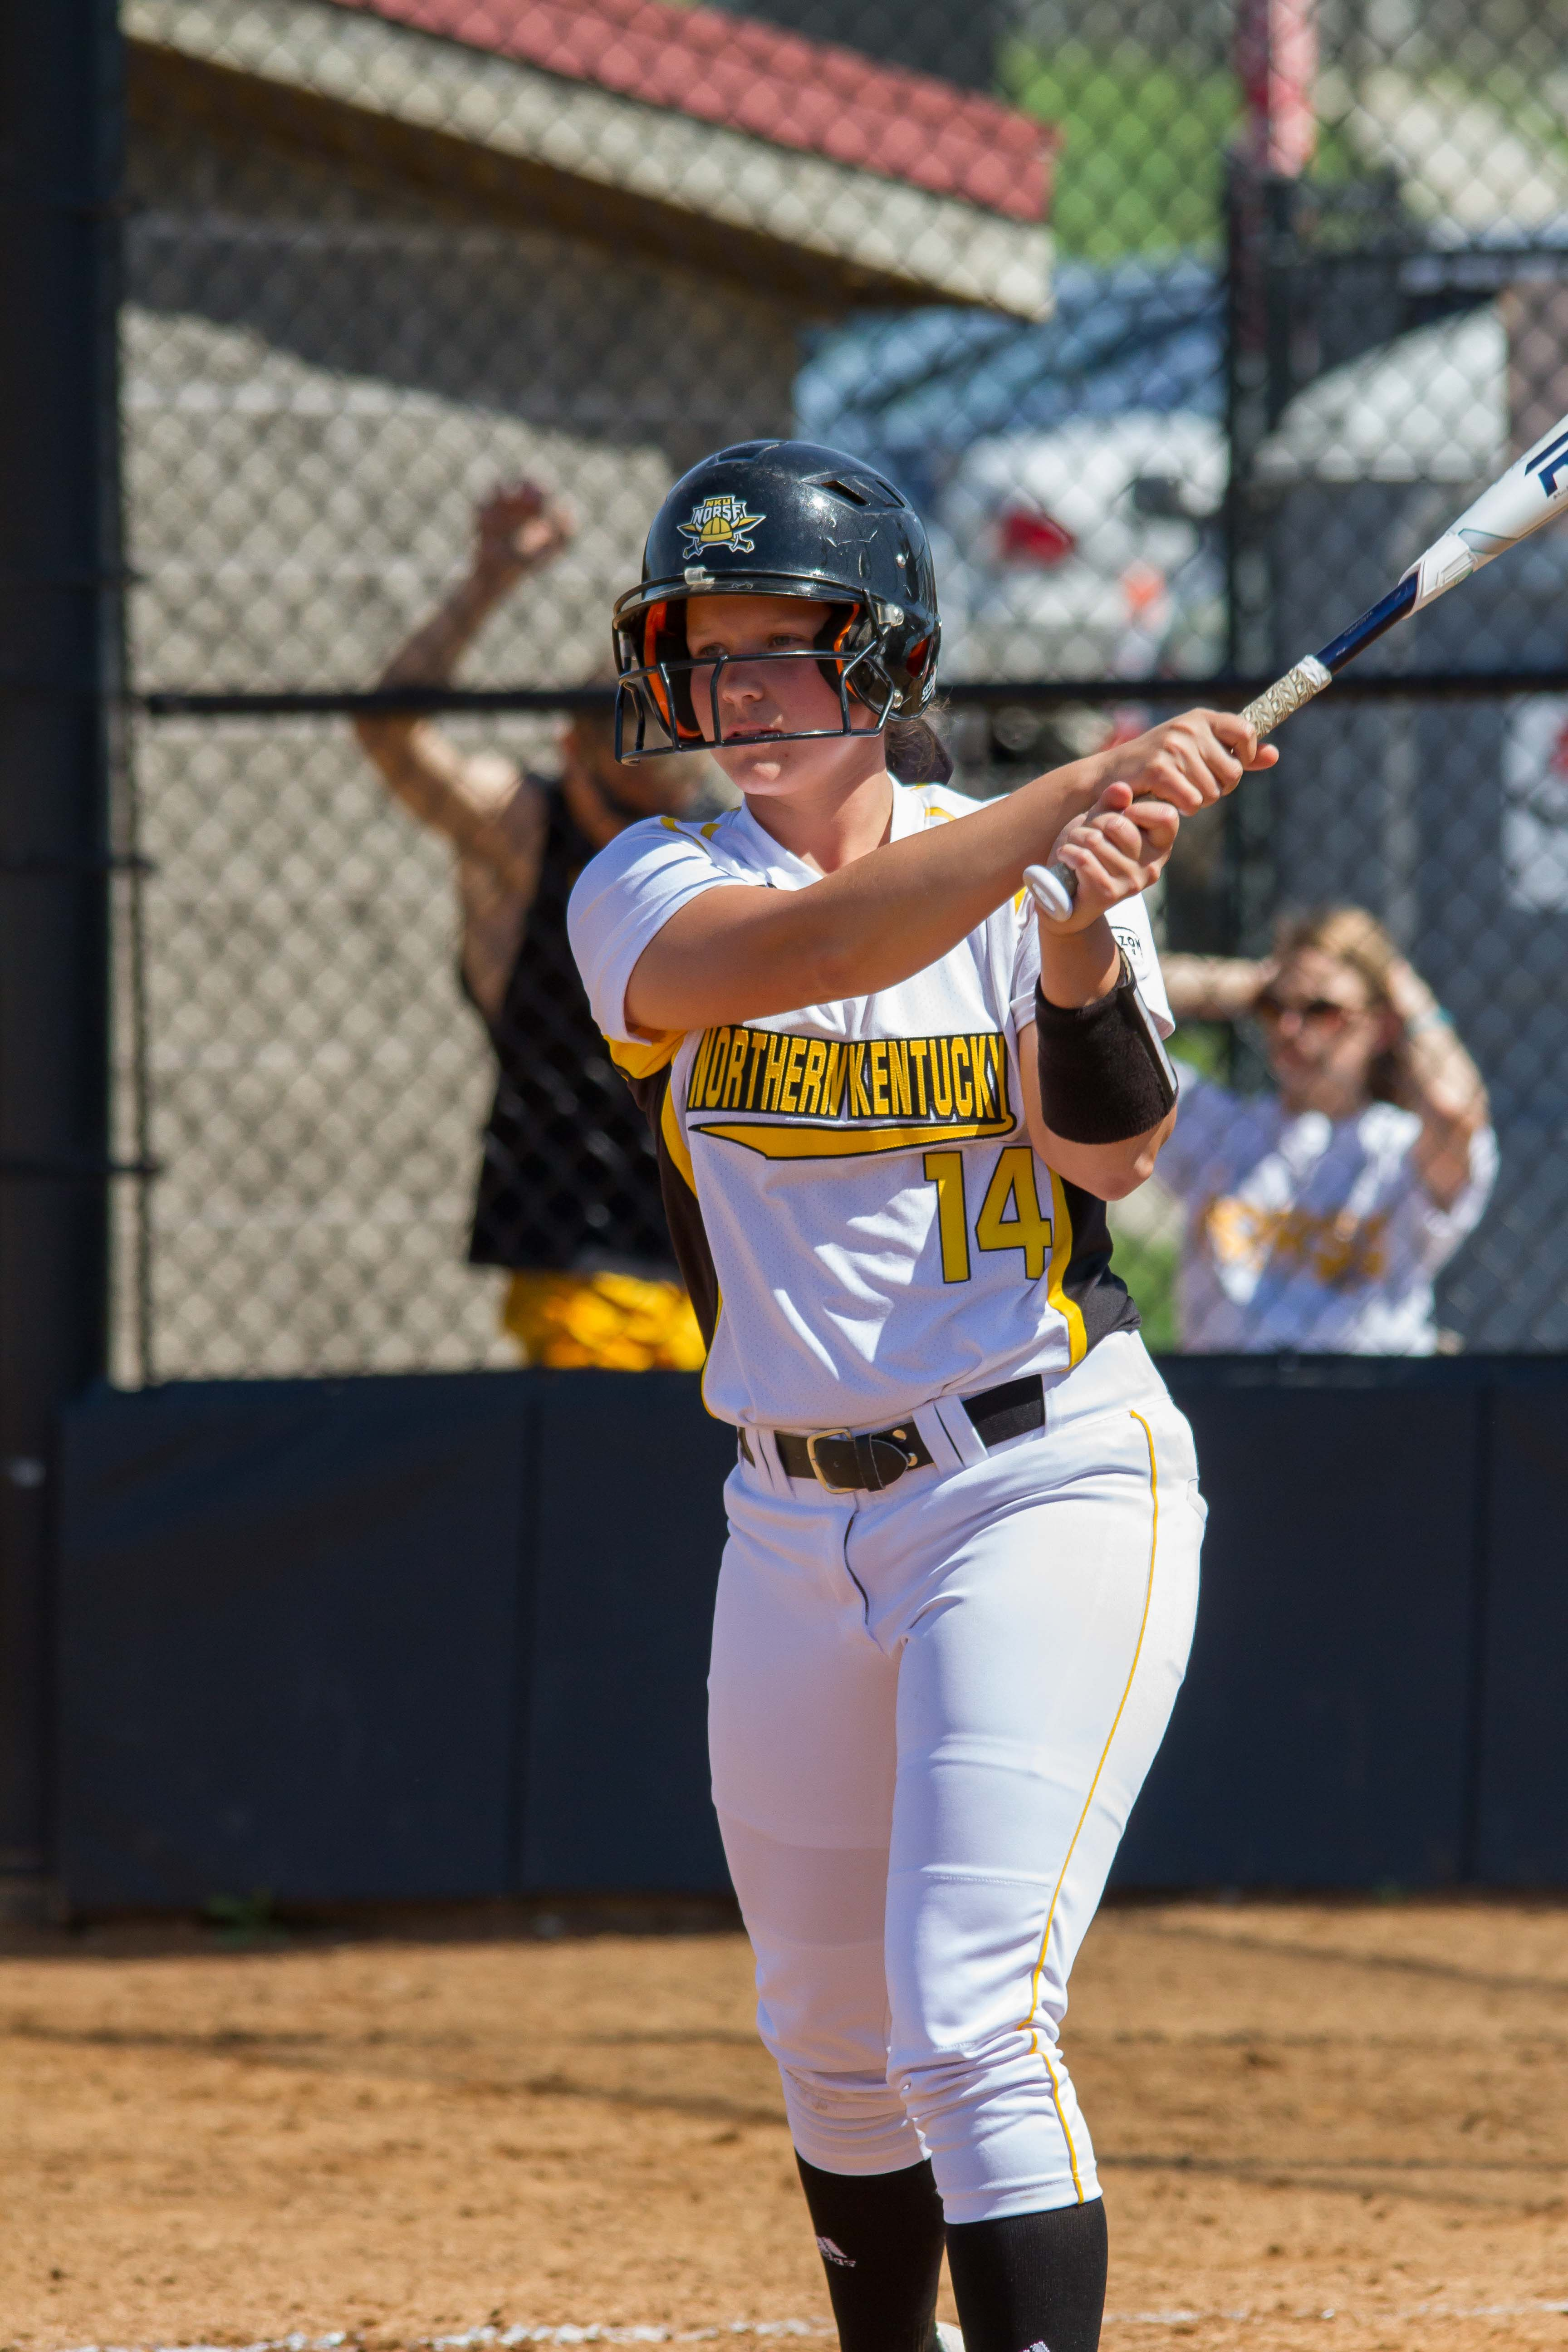 Alina+Maher+prepares+for+her+at+bat+against+Youngstown+State